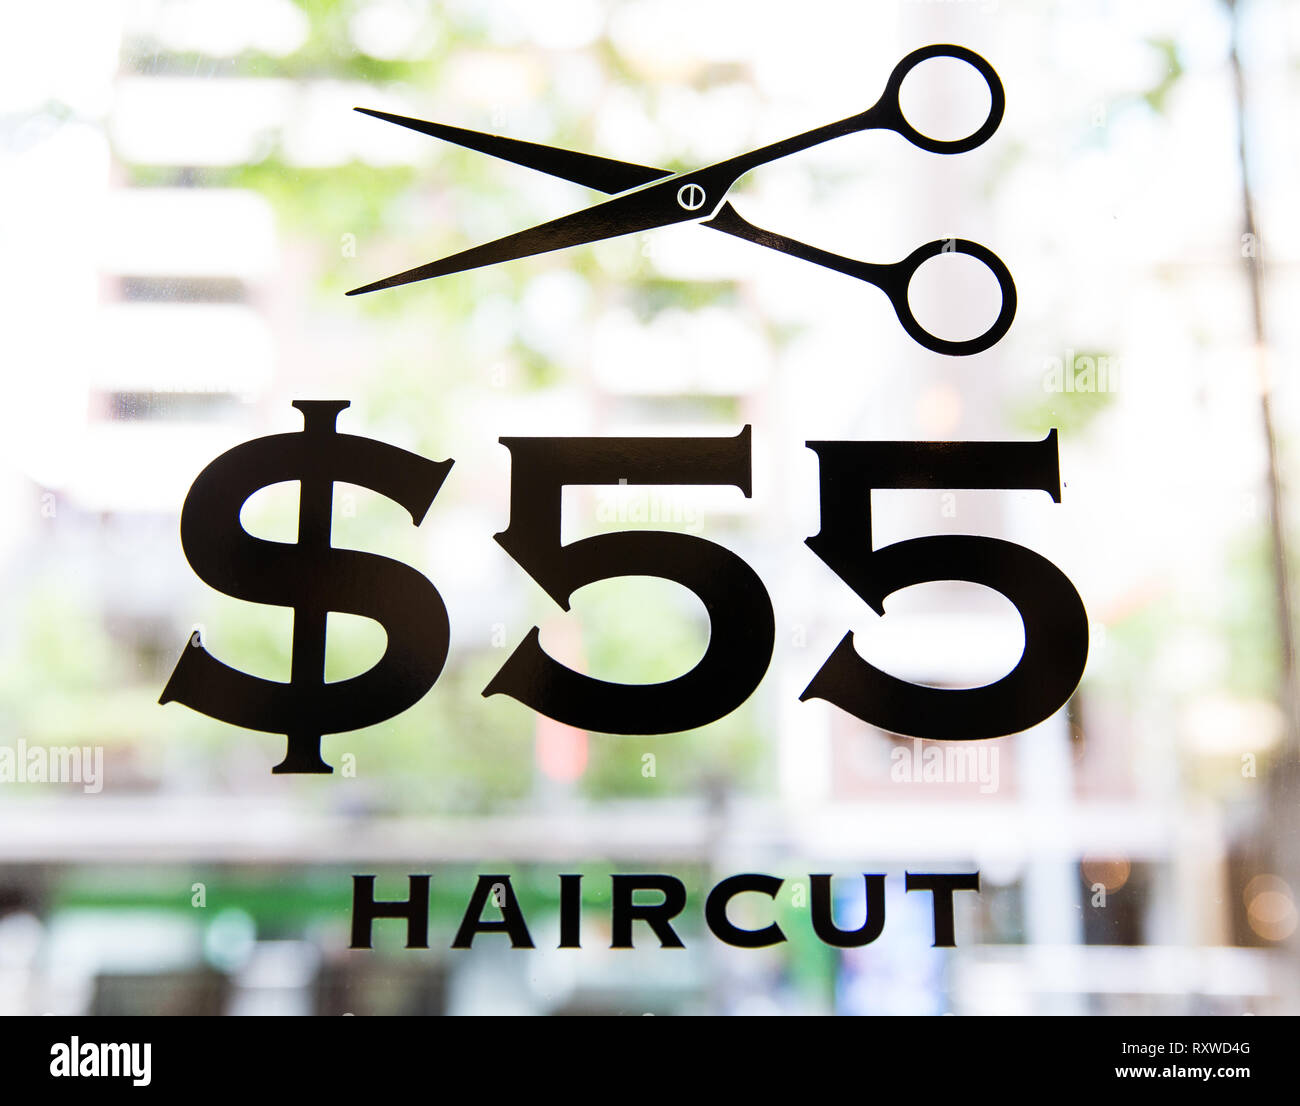 $55 Haircut sign, Melbourne - Stock Image